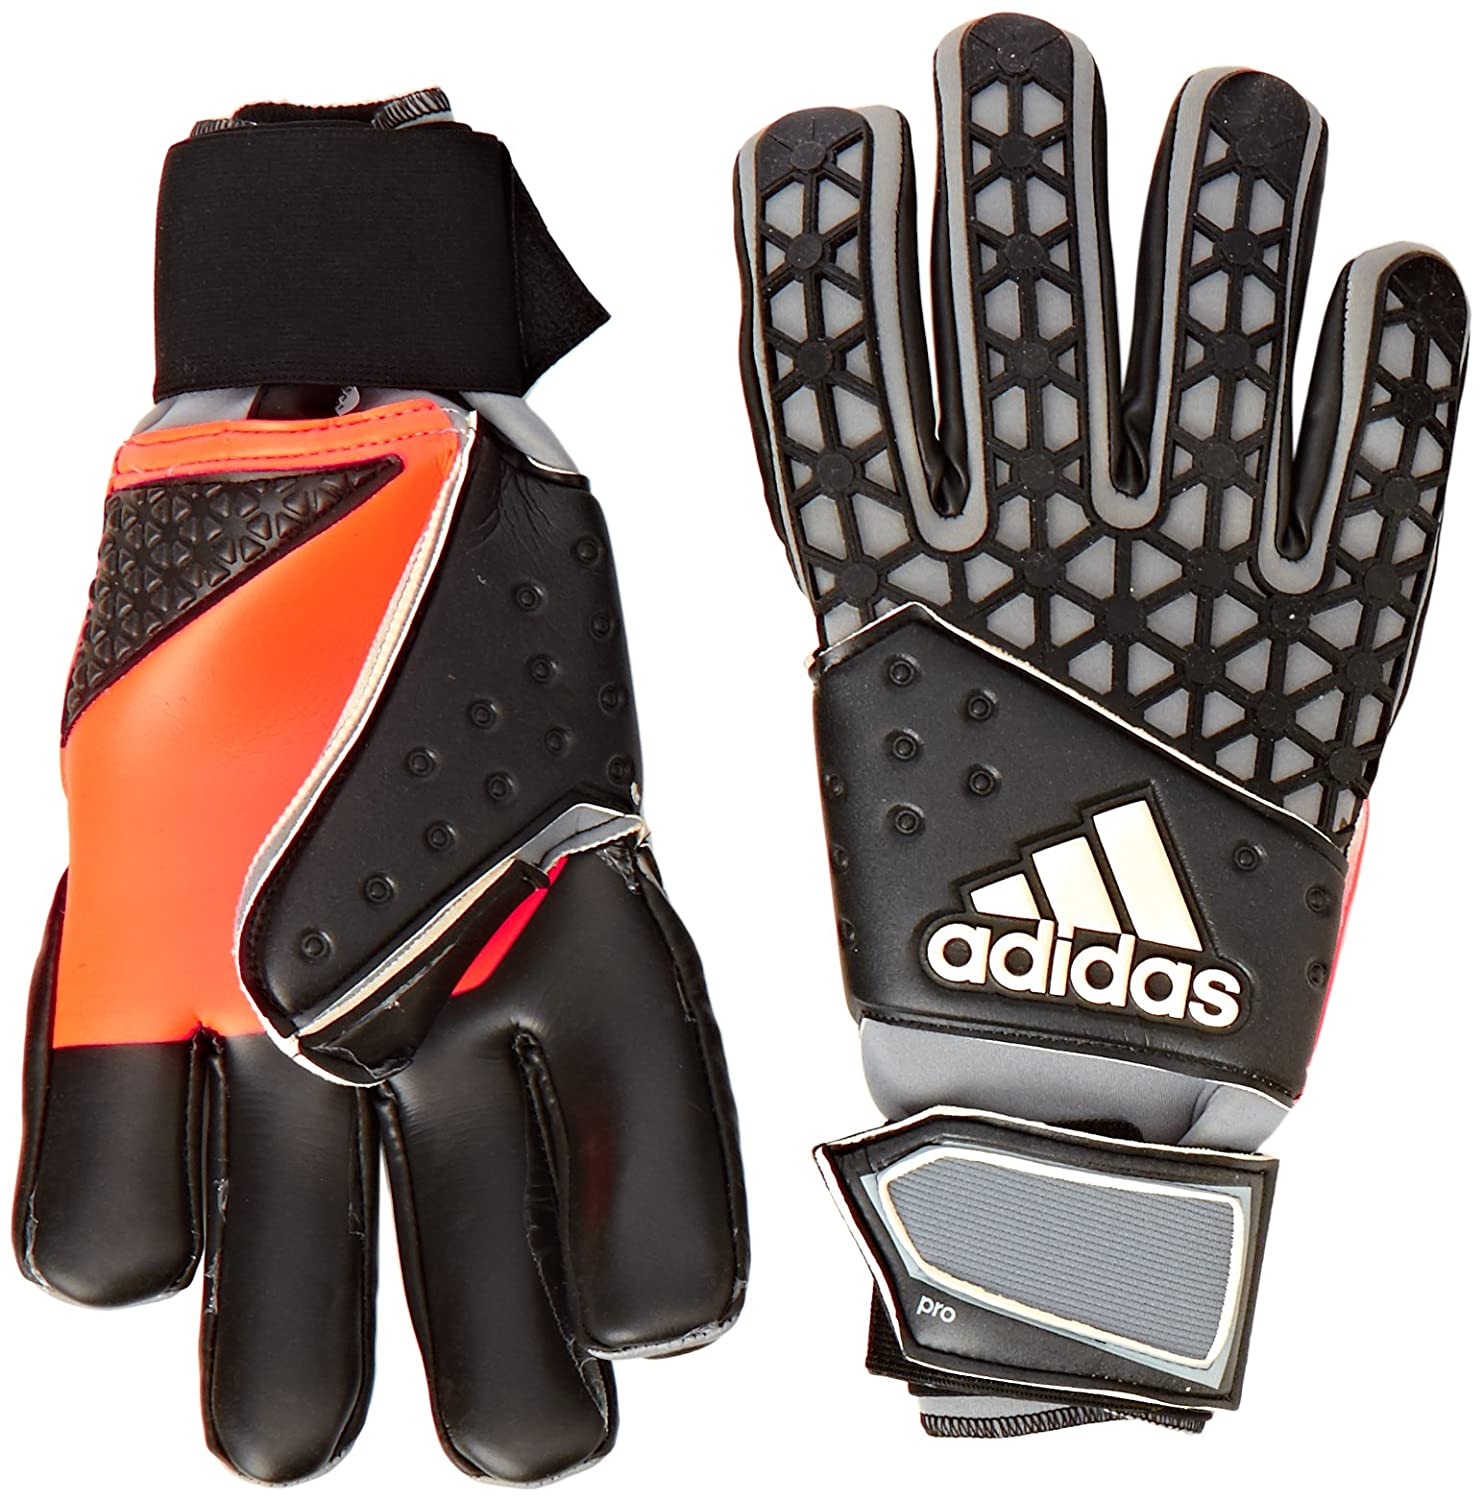 huge discount 62acc 98a47 ... spain adidas torwarthandschuhe ace zones pro iker casillas white black  grey 12 s90271 amazon.de